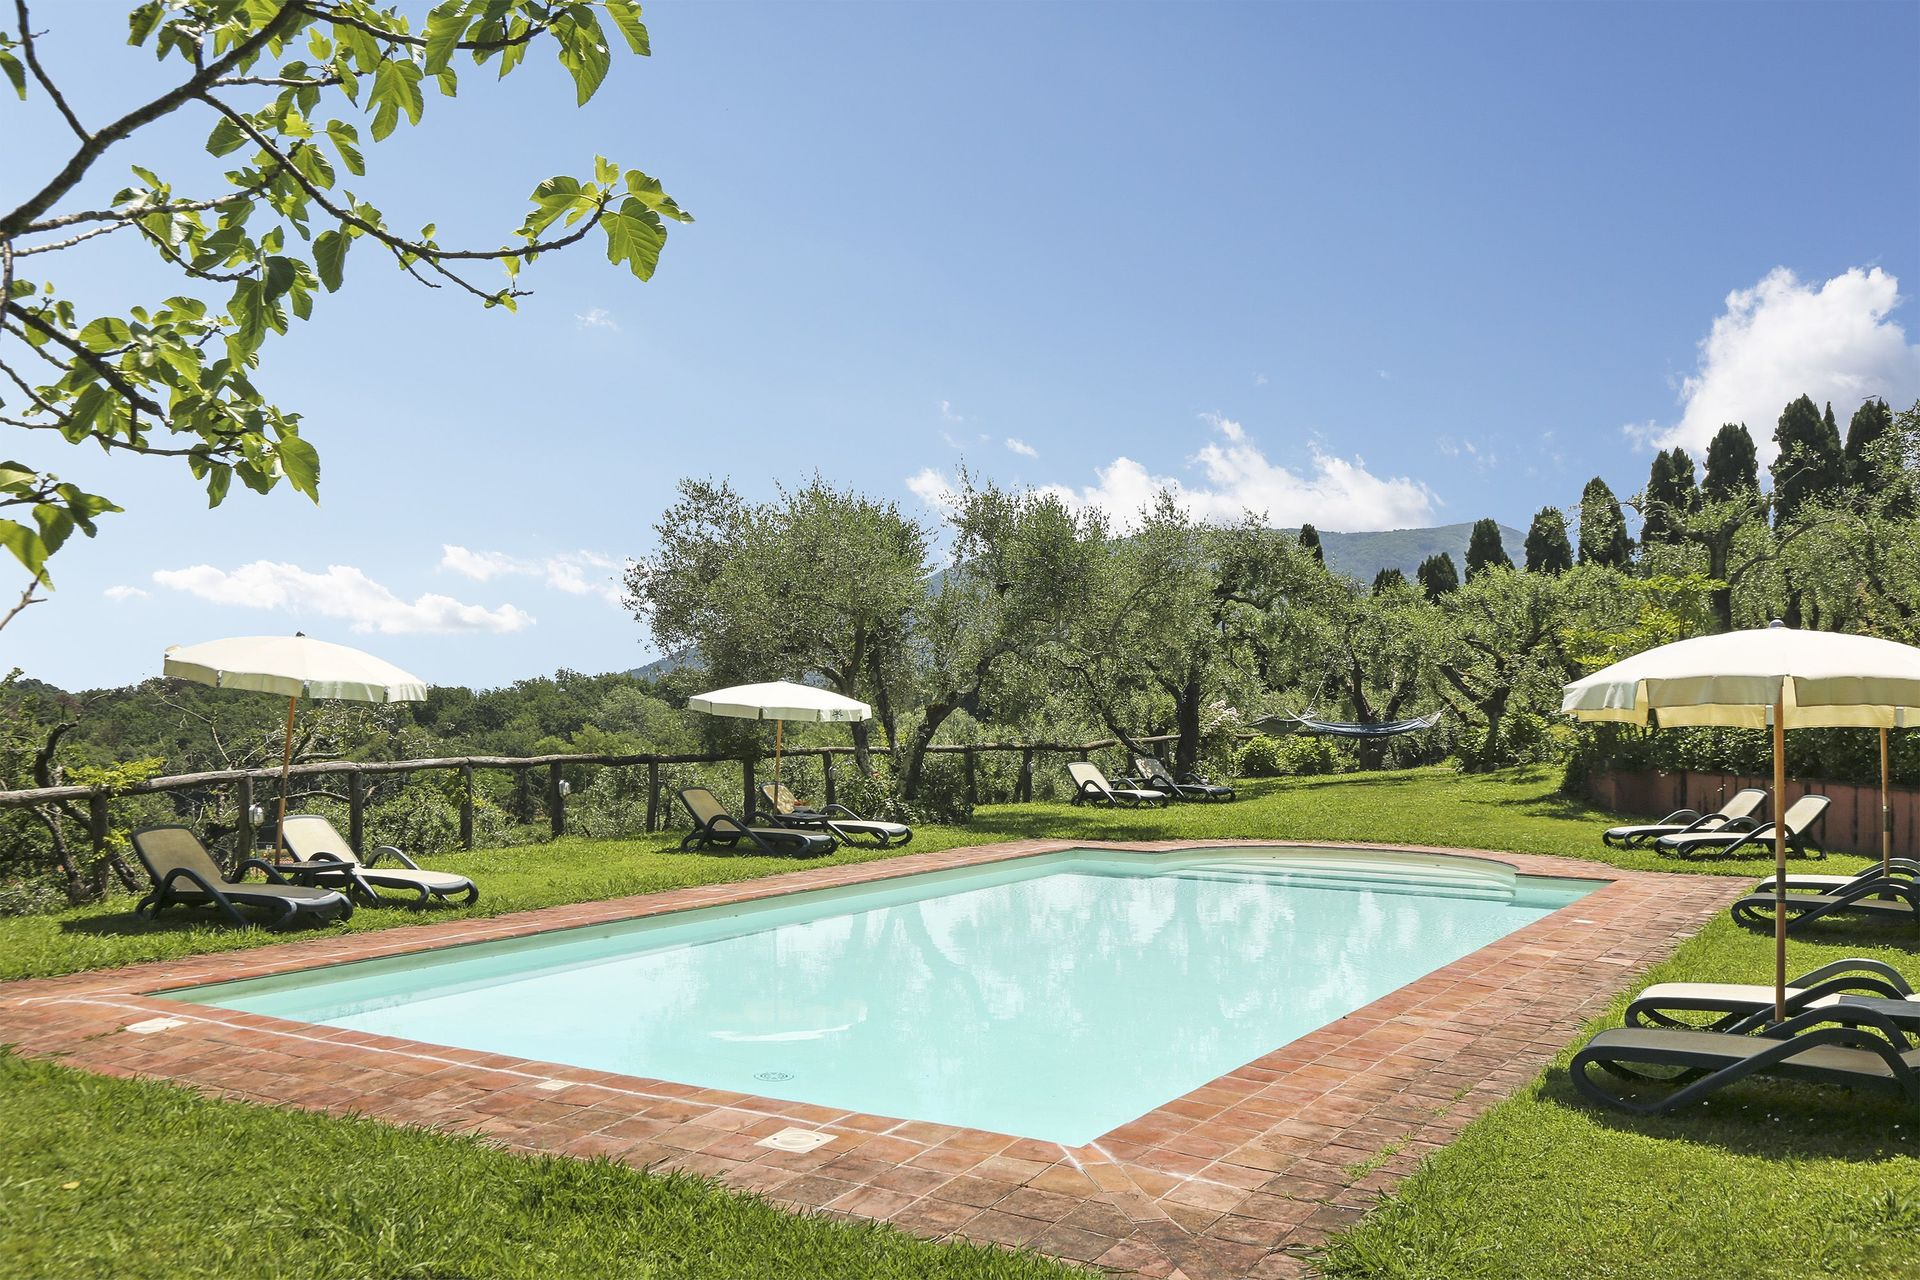 Arliano Villa Vacation Rental Villa Incenso That Sleeps 10 People In